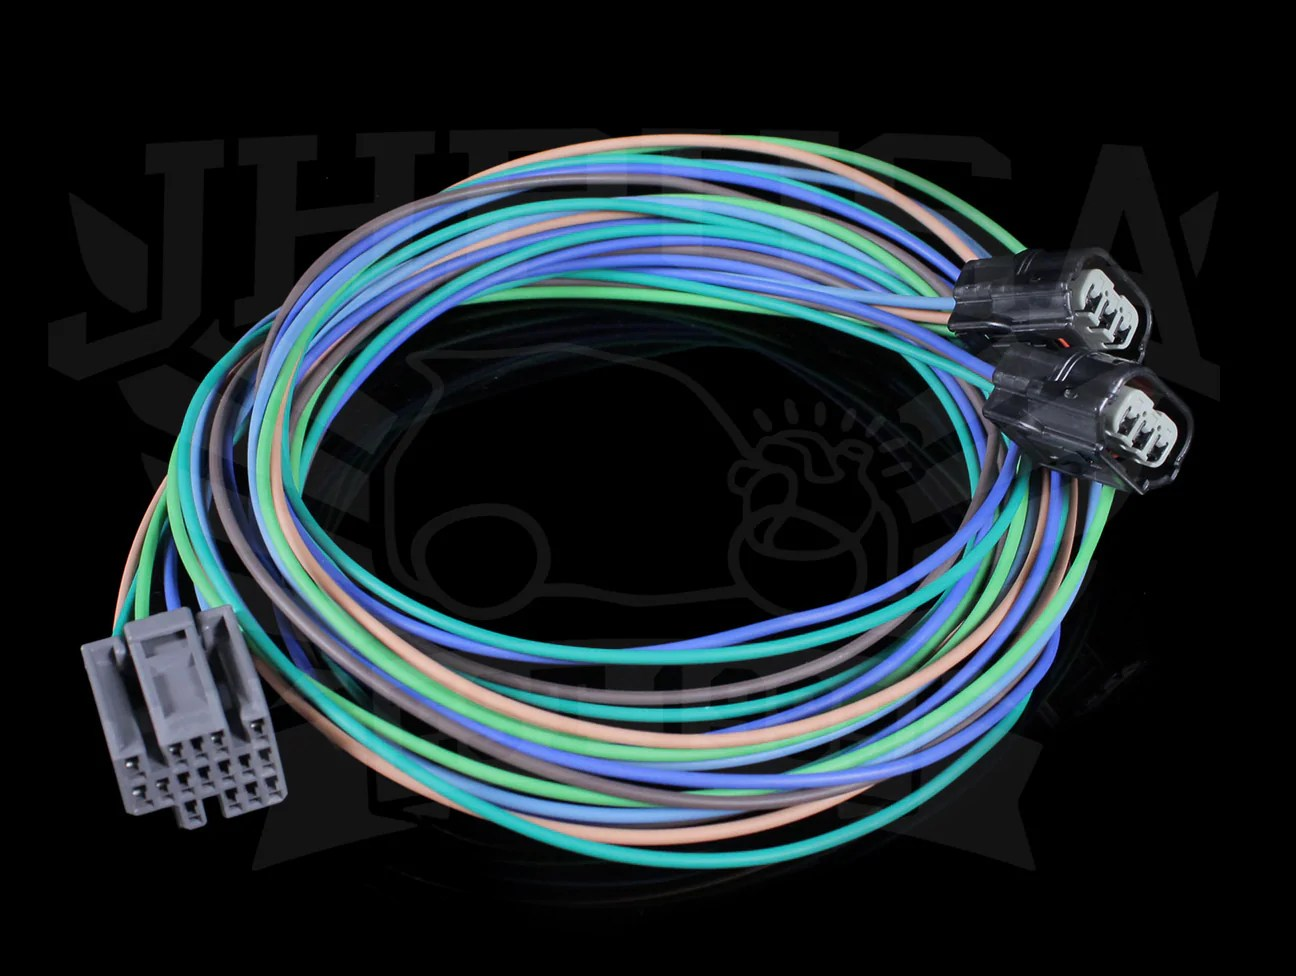 small resolution of s2000 k pro wiring harness install wiring diagram used s2000 k pro wiring harness